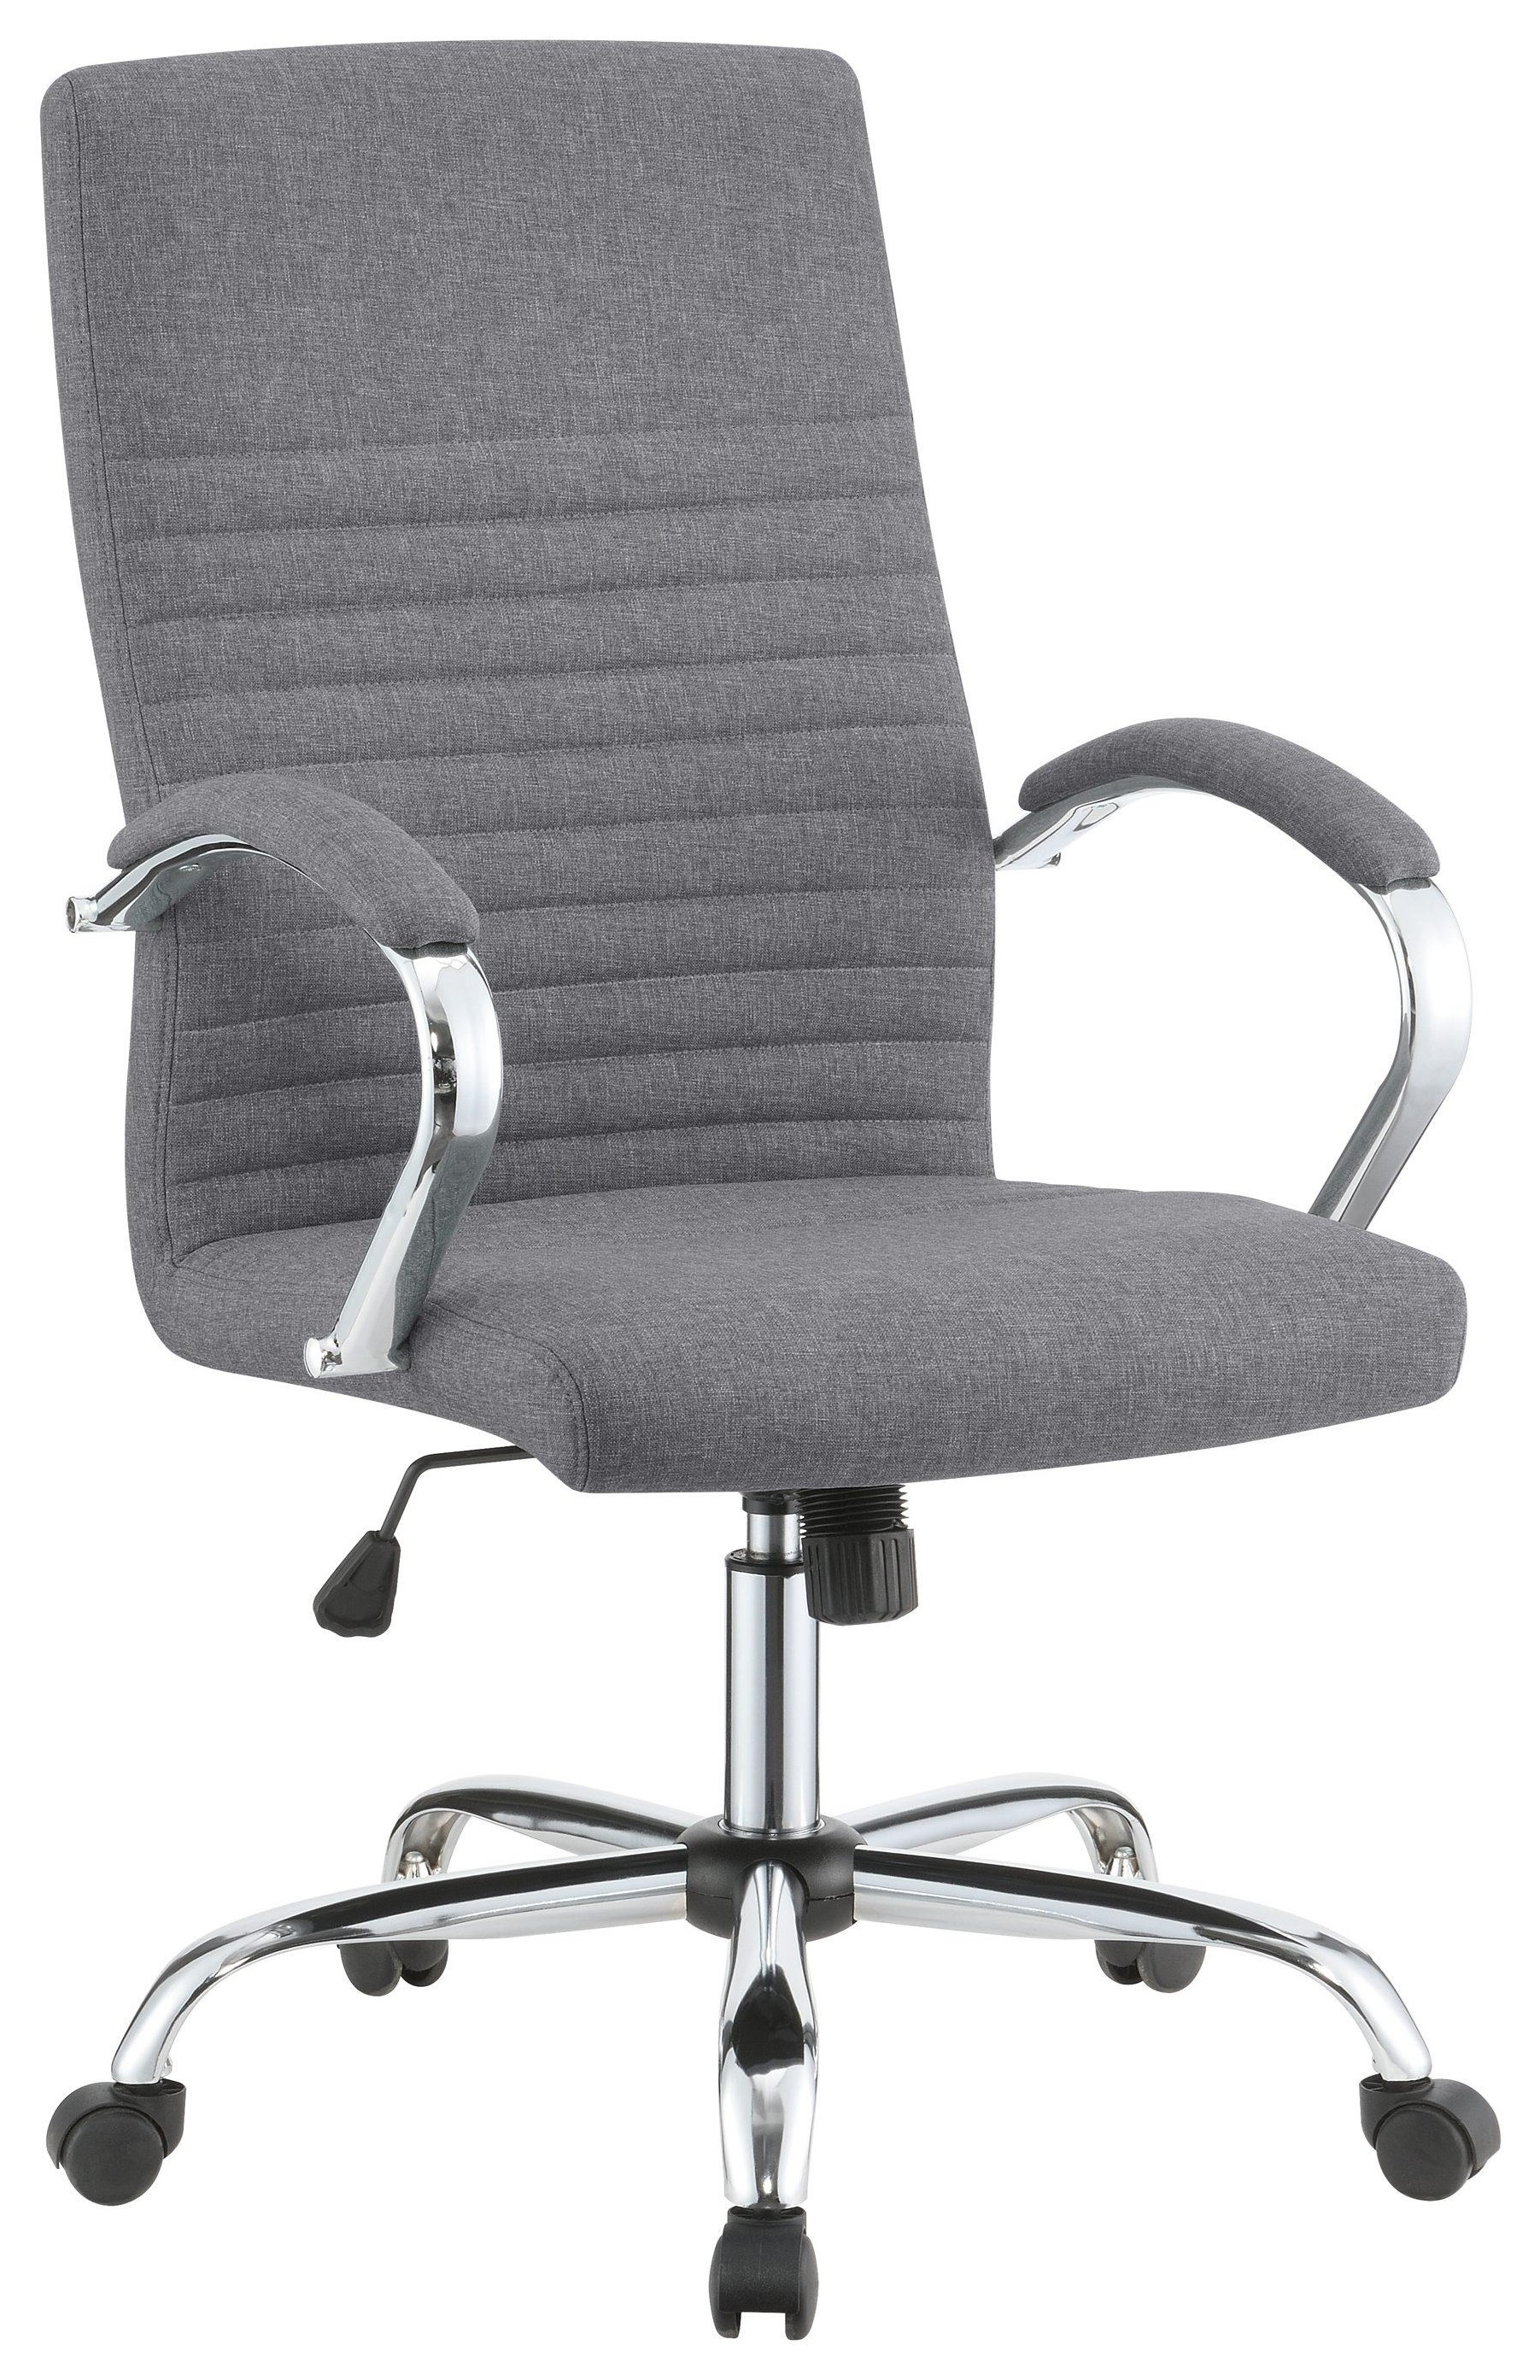 Upholstered Desk Chairs Upholstered Office Chair by Coaster at Sam Levitz Outlet